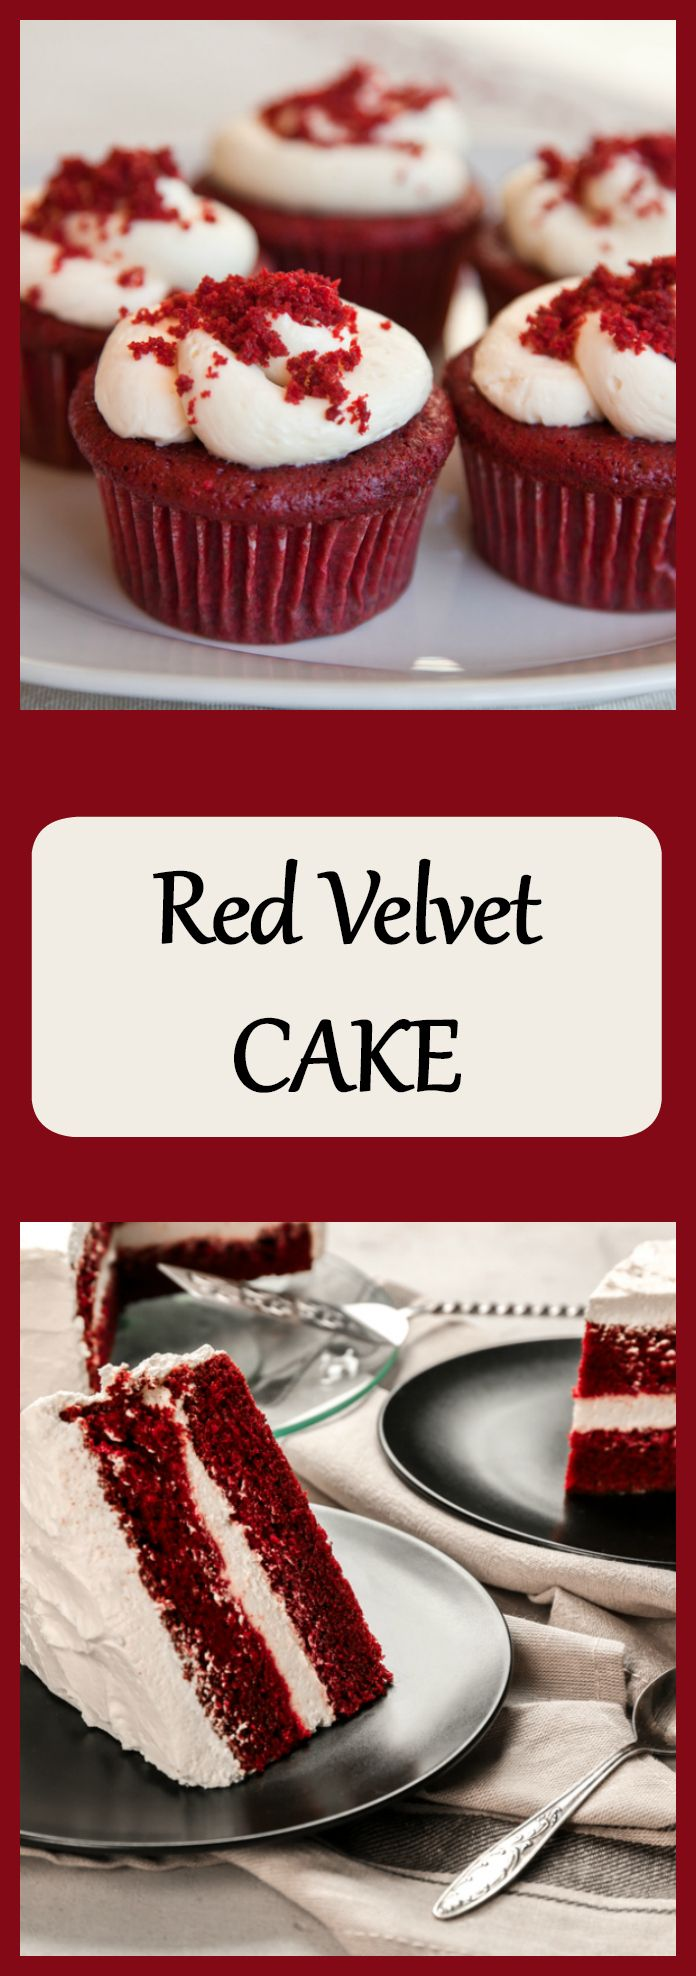 Red Velvet cake recipe with cream cheese icing. This is a classic and delicious dessert.